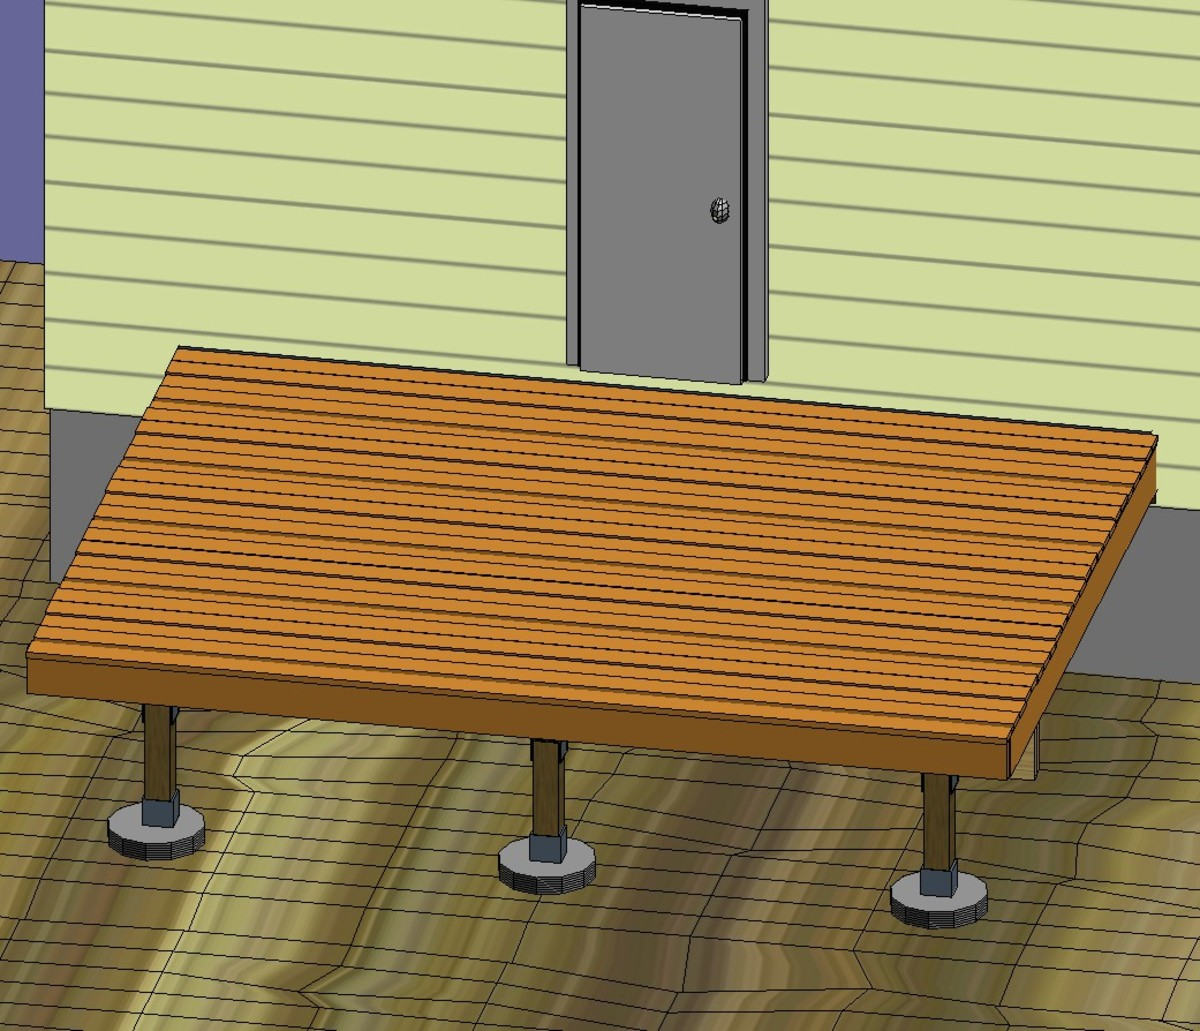 Fig 5.  Complete laying of deck boards